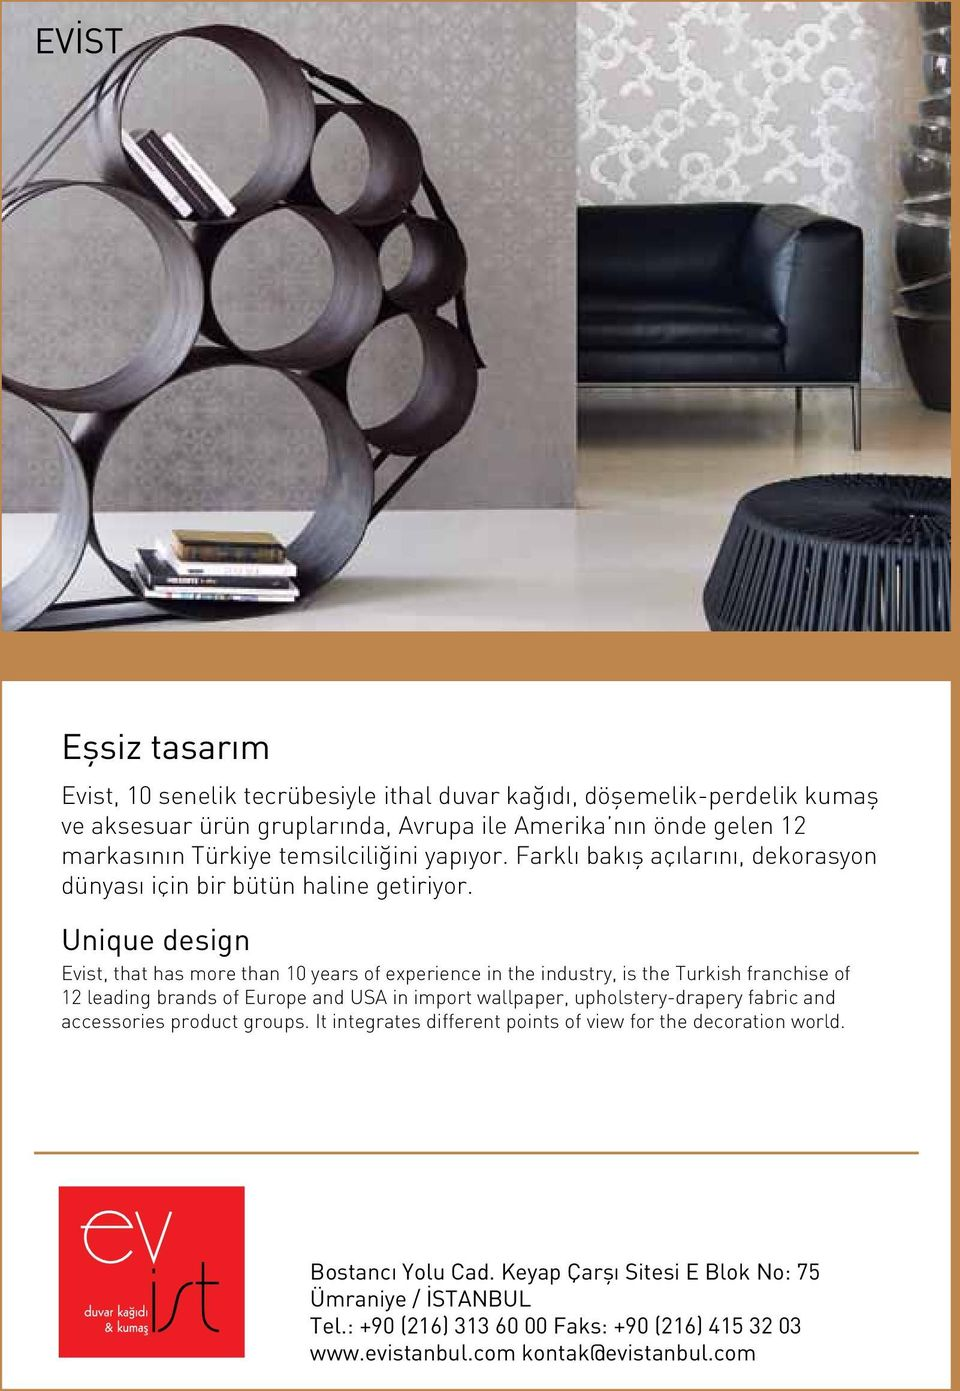 Unique design Evist, that has more than 10 years of experience in the industry, is the Turkish franchise of 12 leading brands of Europe and USA in import wallpaper, upholstery-drapery